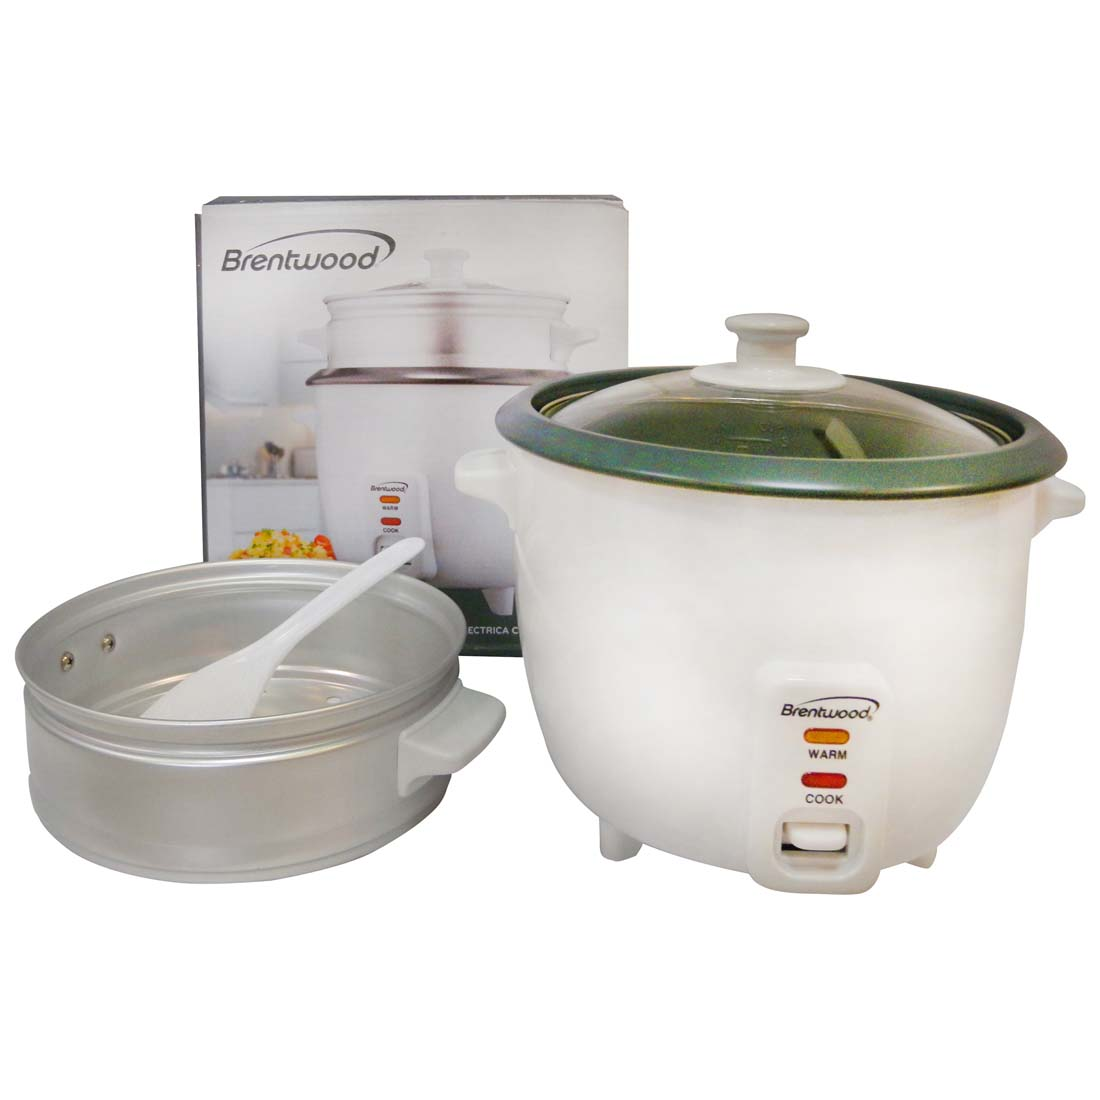 View BRENTWOOD RICE COOKER&STEAMER 1.0 LITER UL LISTED